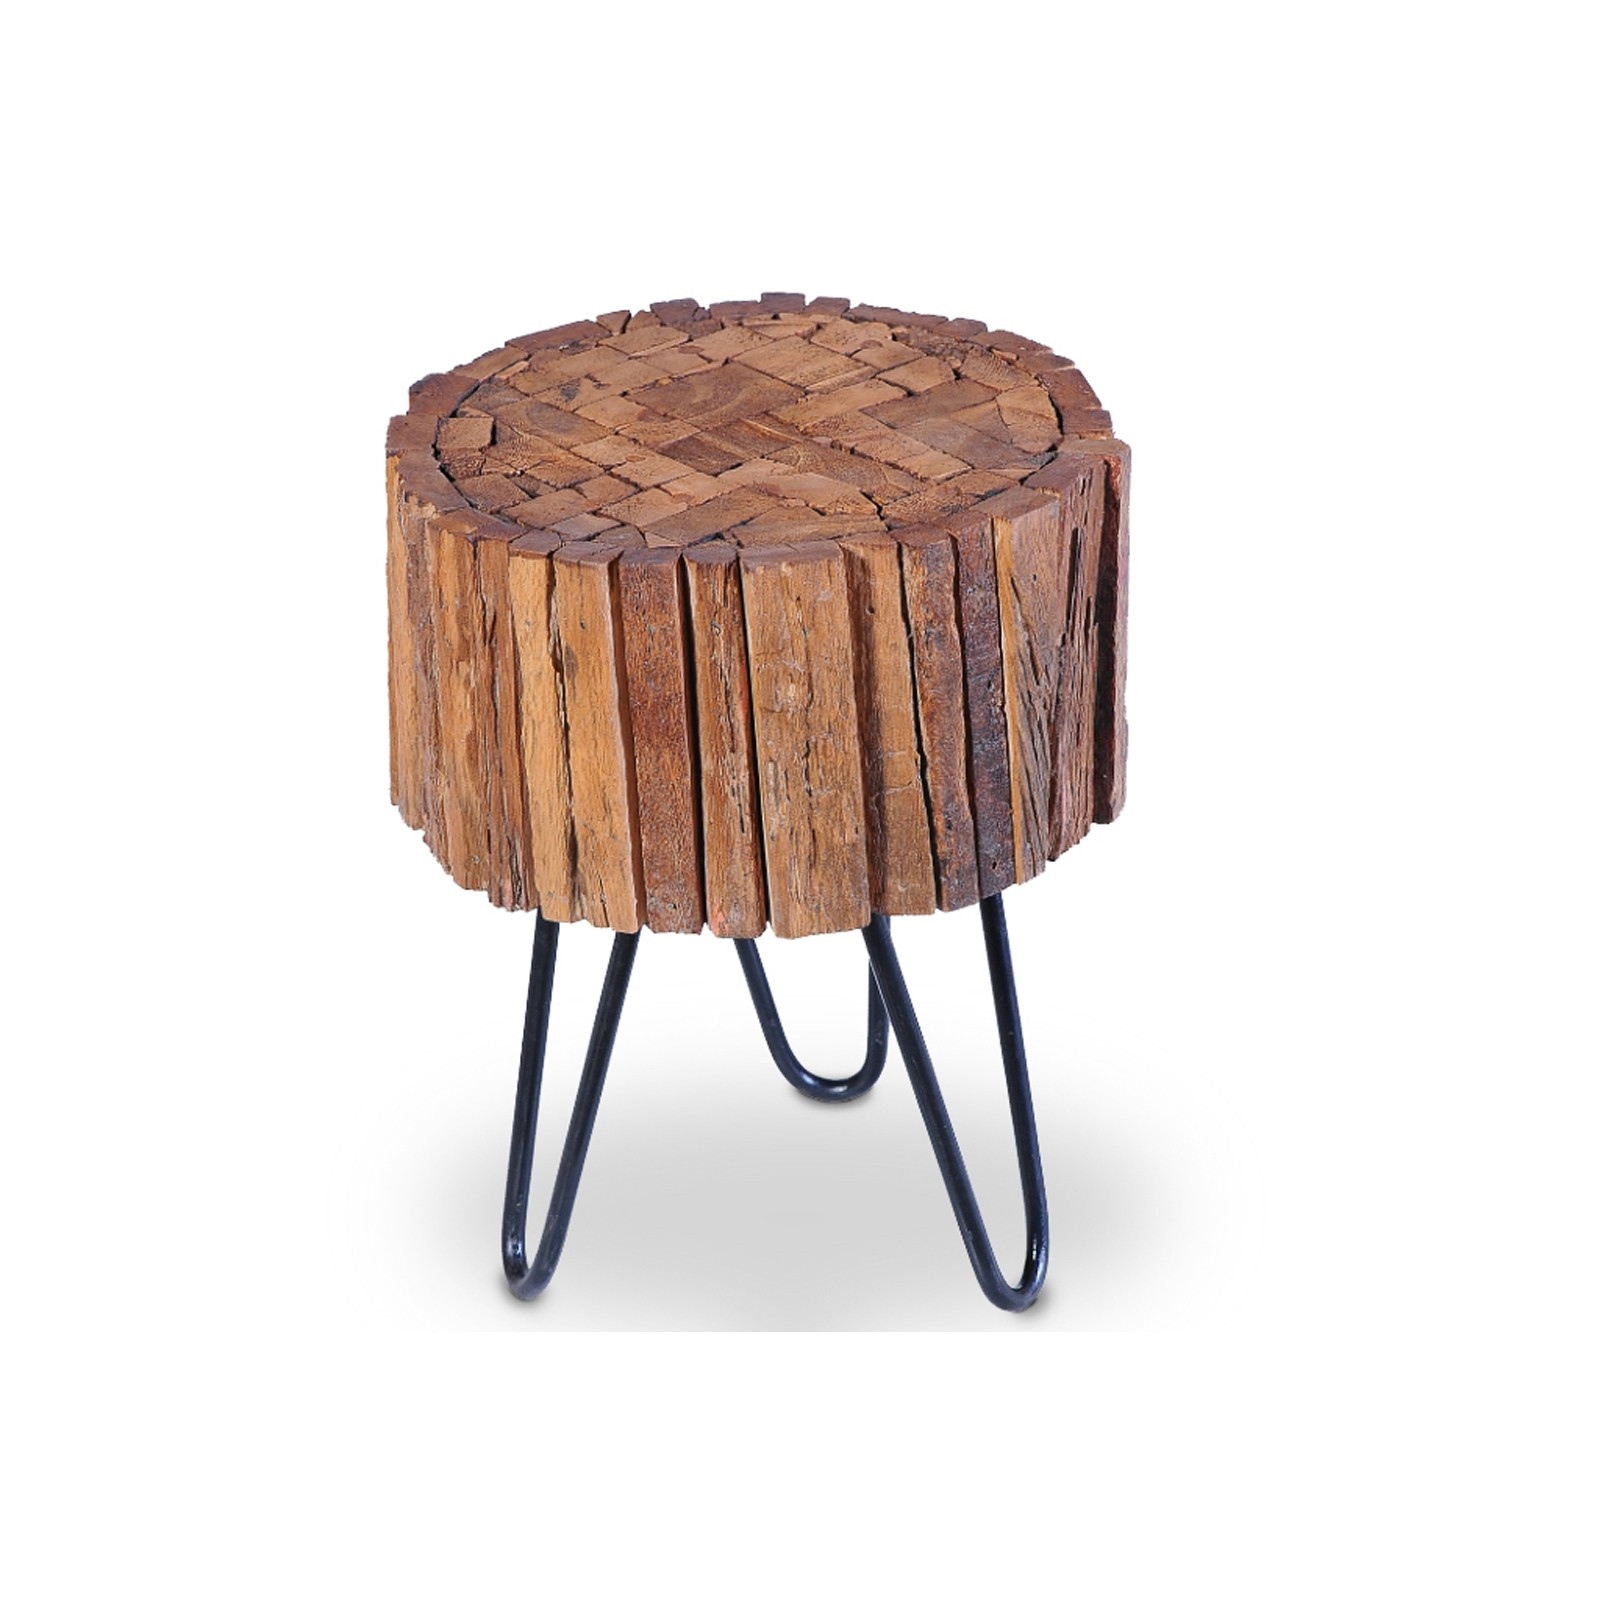 Www Modern Furniture: Industrial Vintage Rustic Round Wooden Coffee Side Table